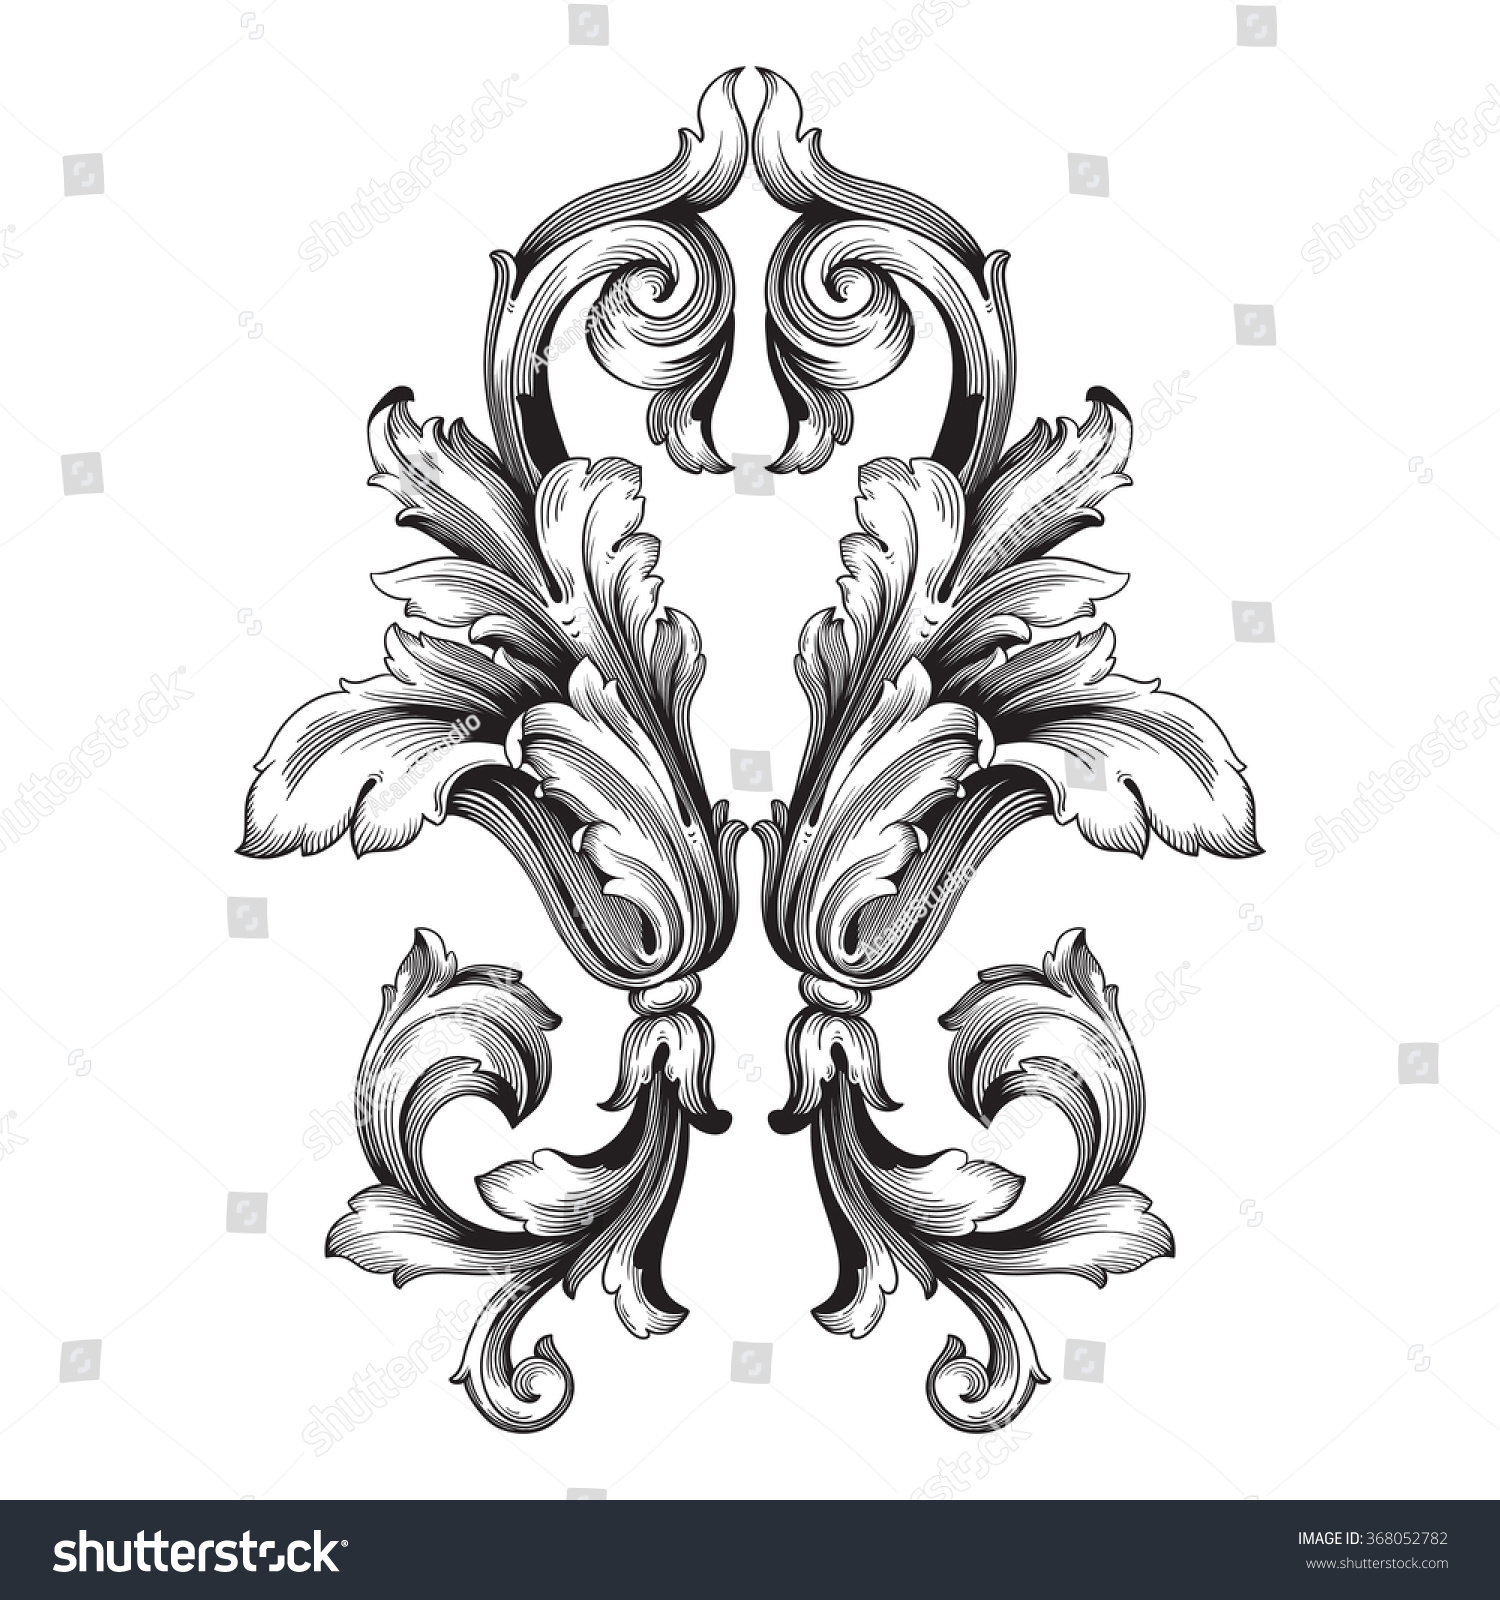 Antique Scroll Vector: Vintage Baroque Frame Scroll Ornament Engraving Immagine